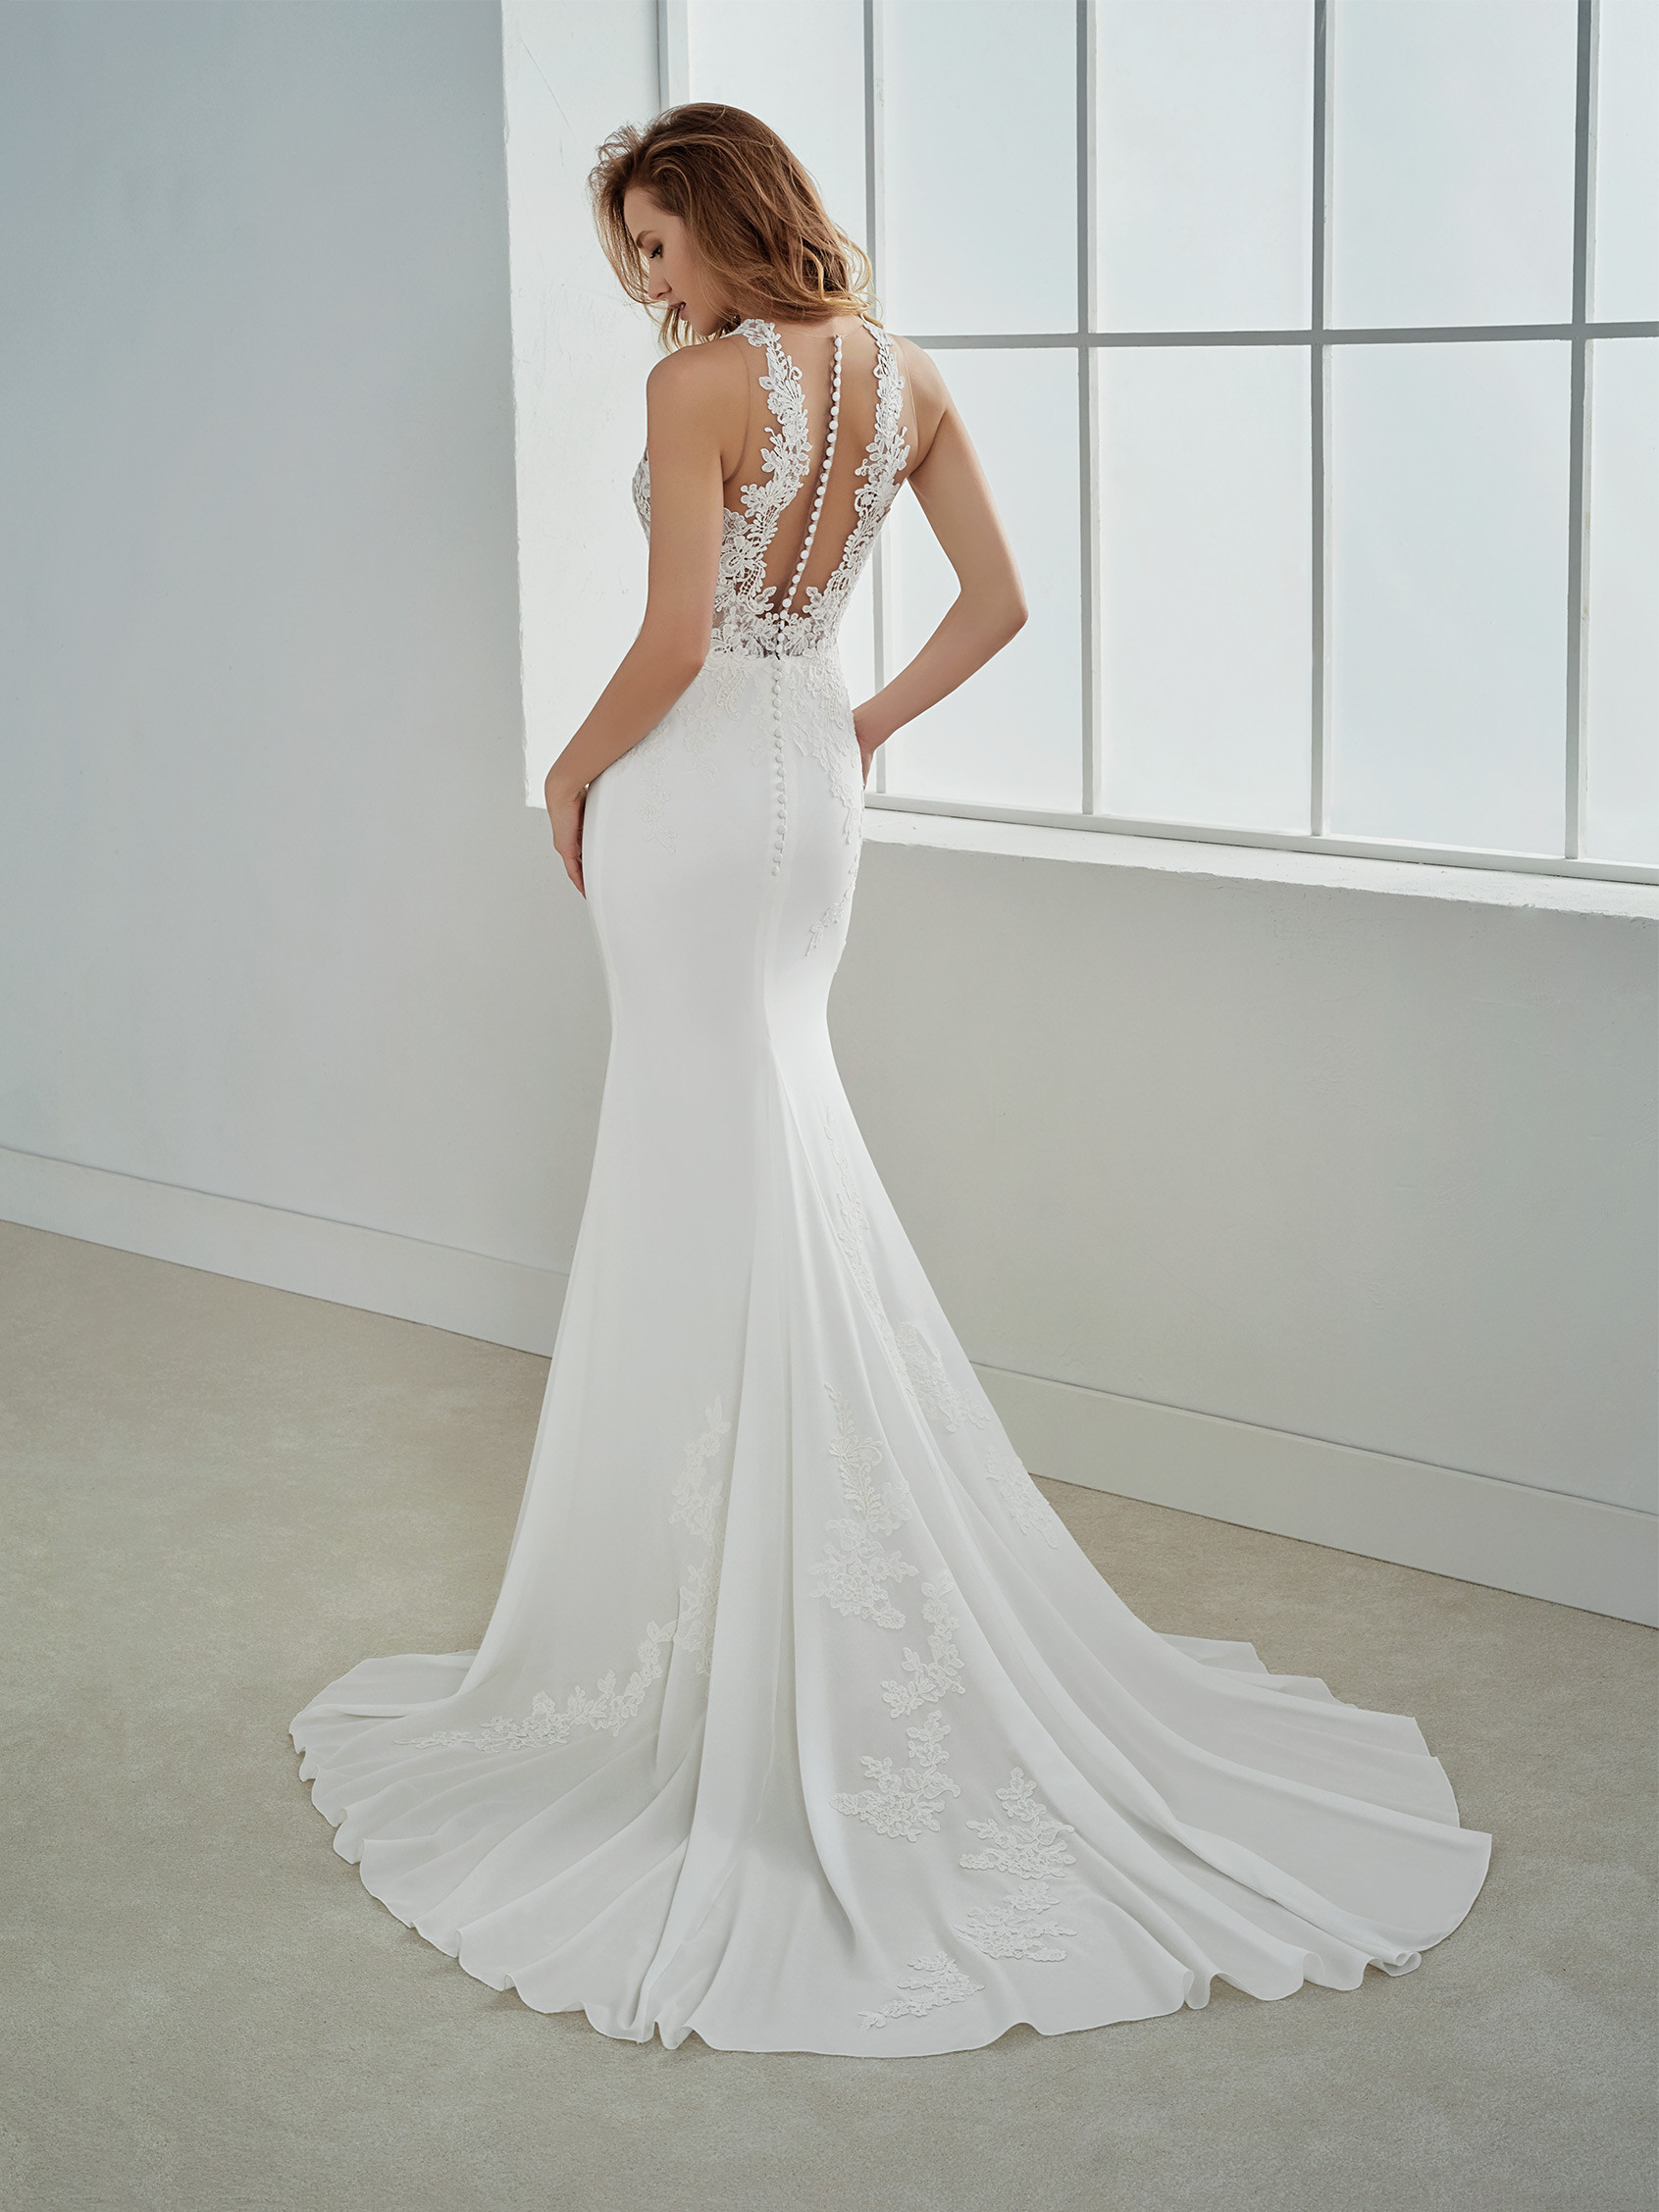 Brautkleid-filipinas_c